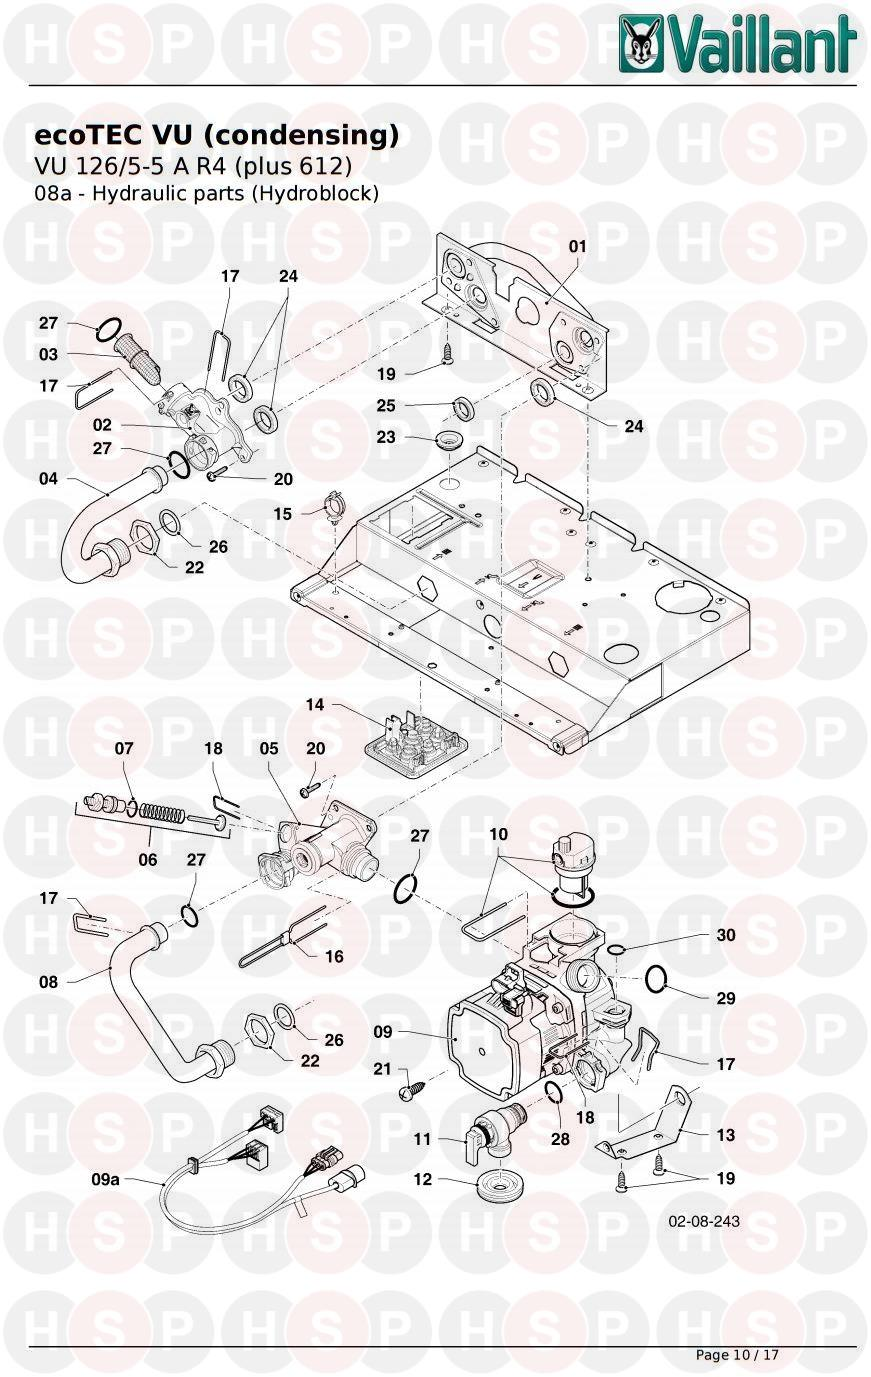 Vaillant ecotec plus 624 wiring diagram the best wiring diagram 2017 vaillant ecotec plus 612 vu 126 5 a r4 2017 onwards 8a hydraulics cheapraybanclubmaster Gallery